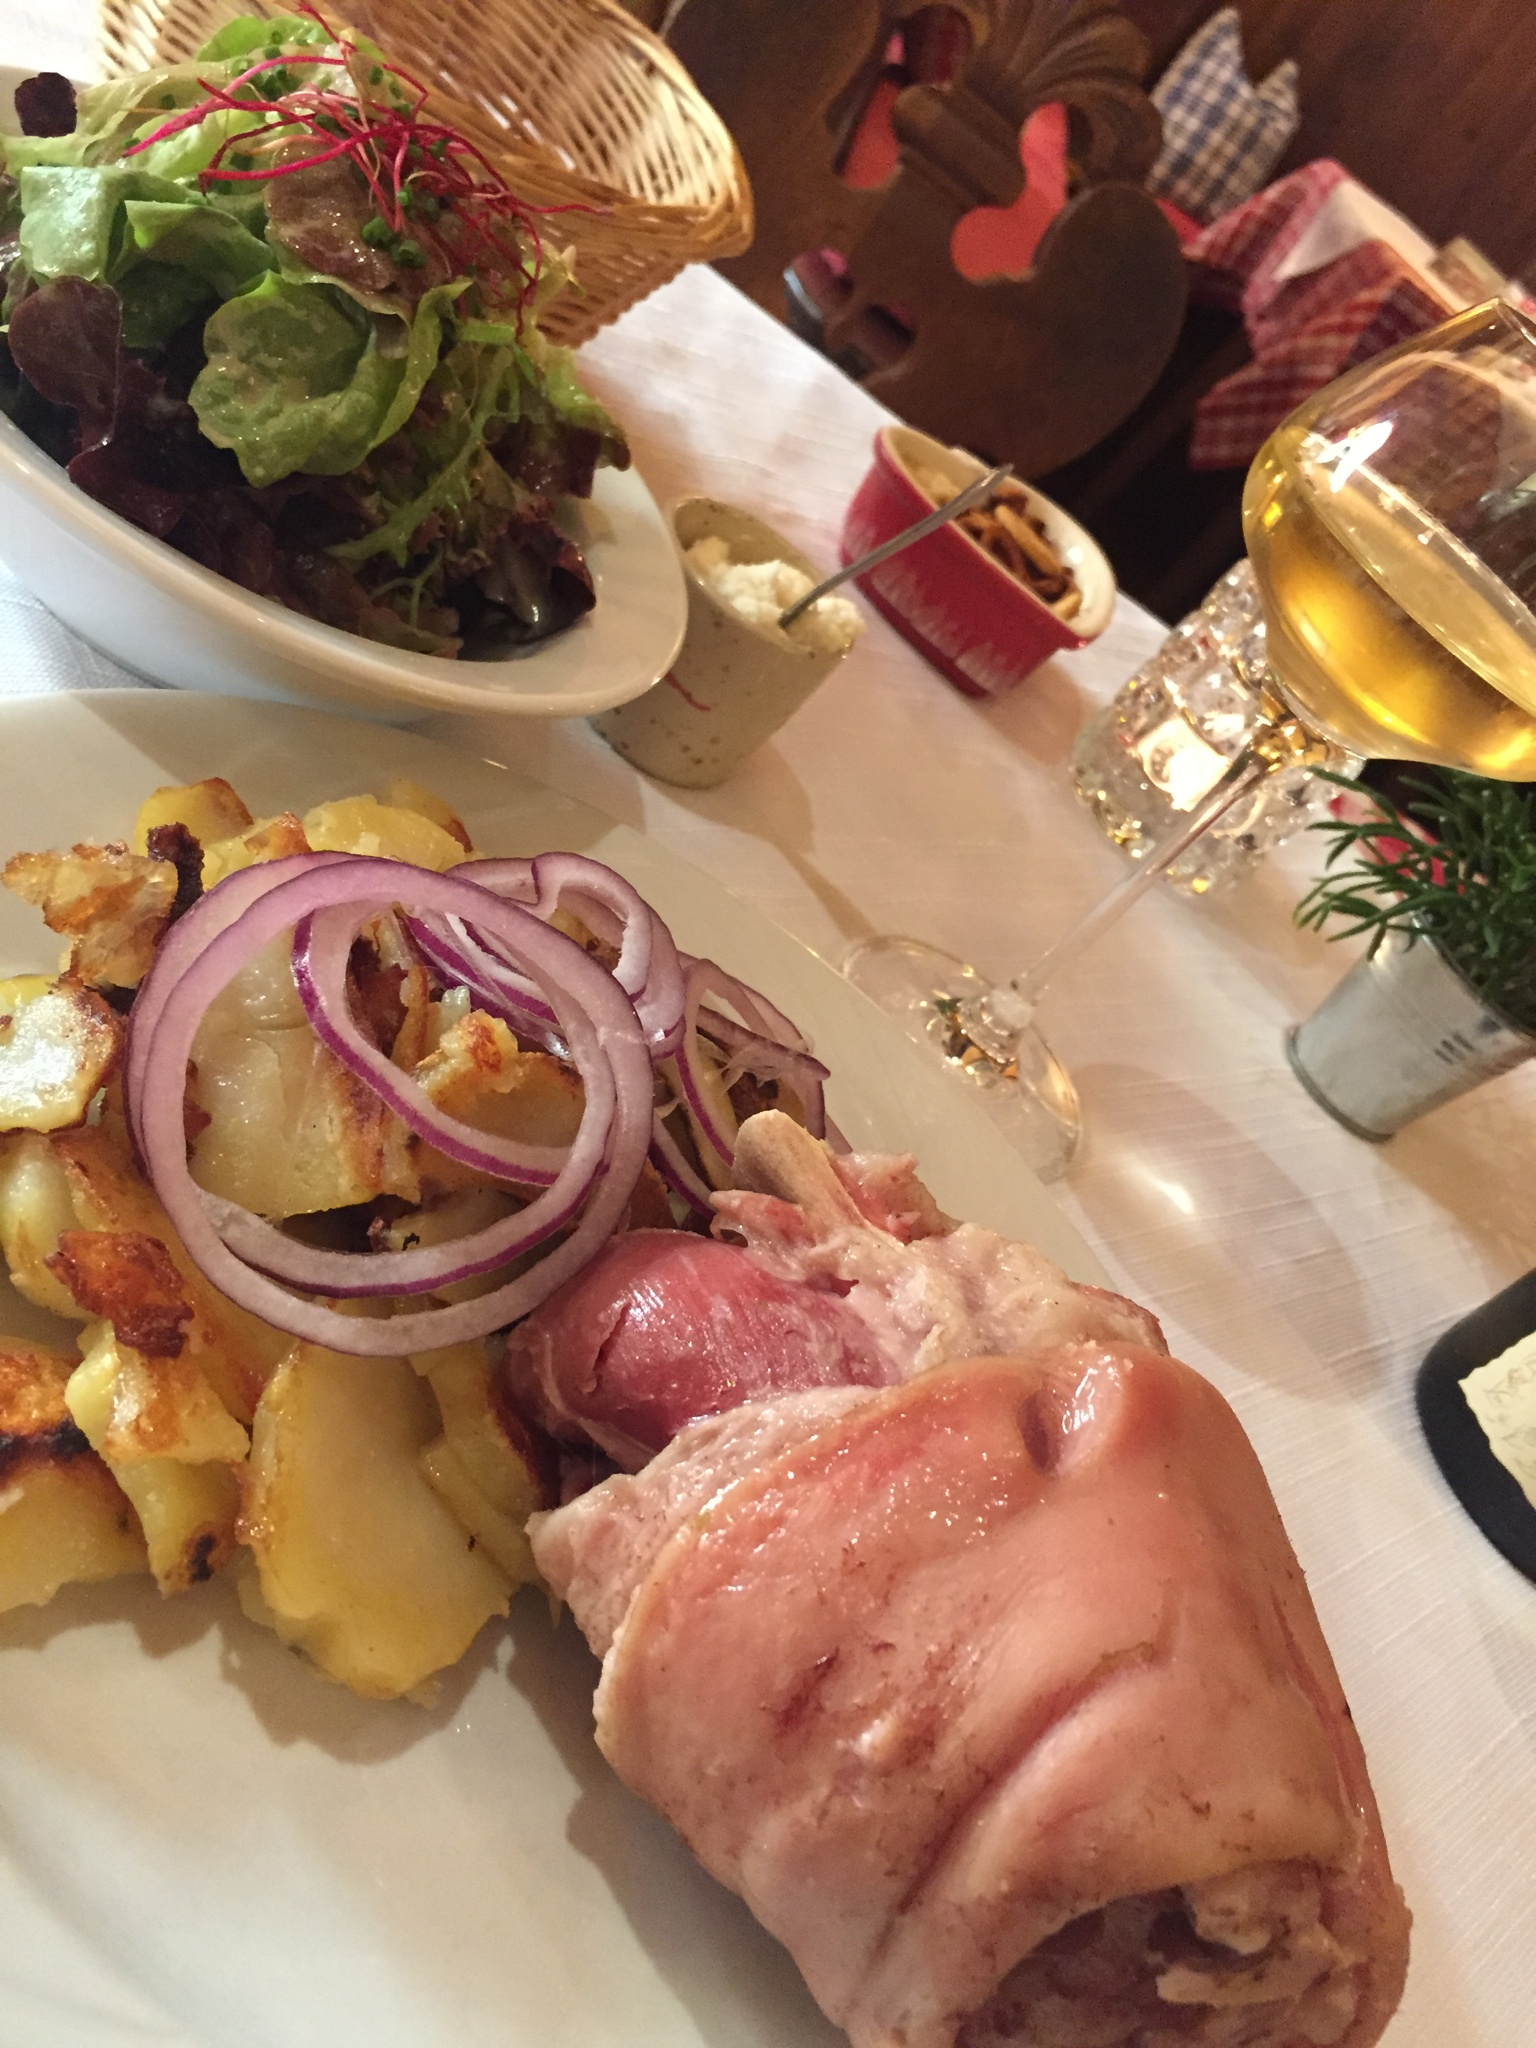 Alsace dining. Photo by Shelley Cartland.